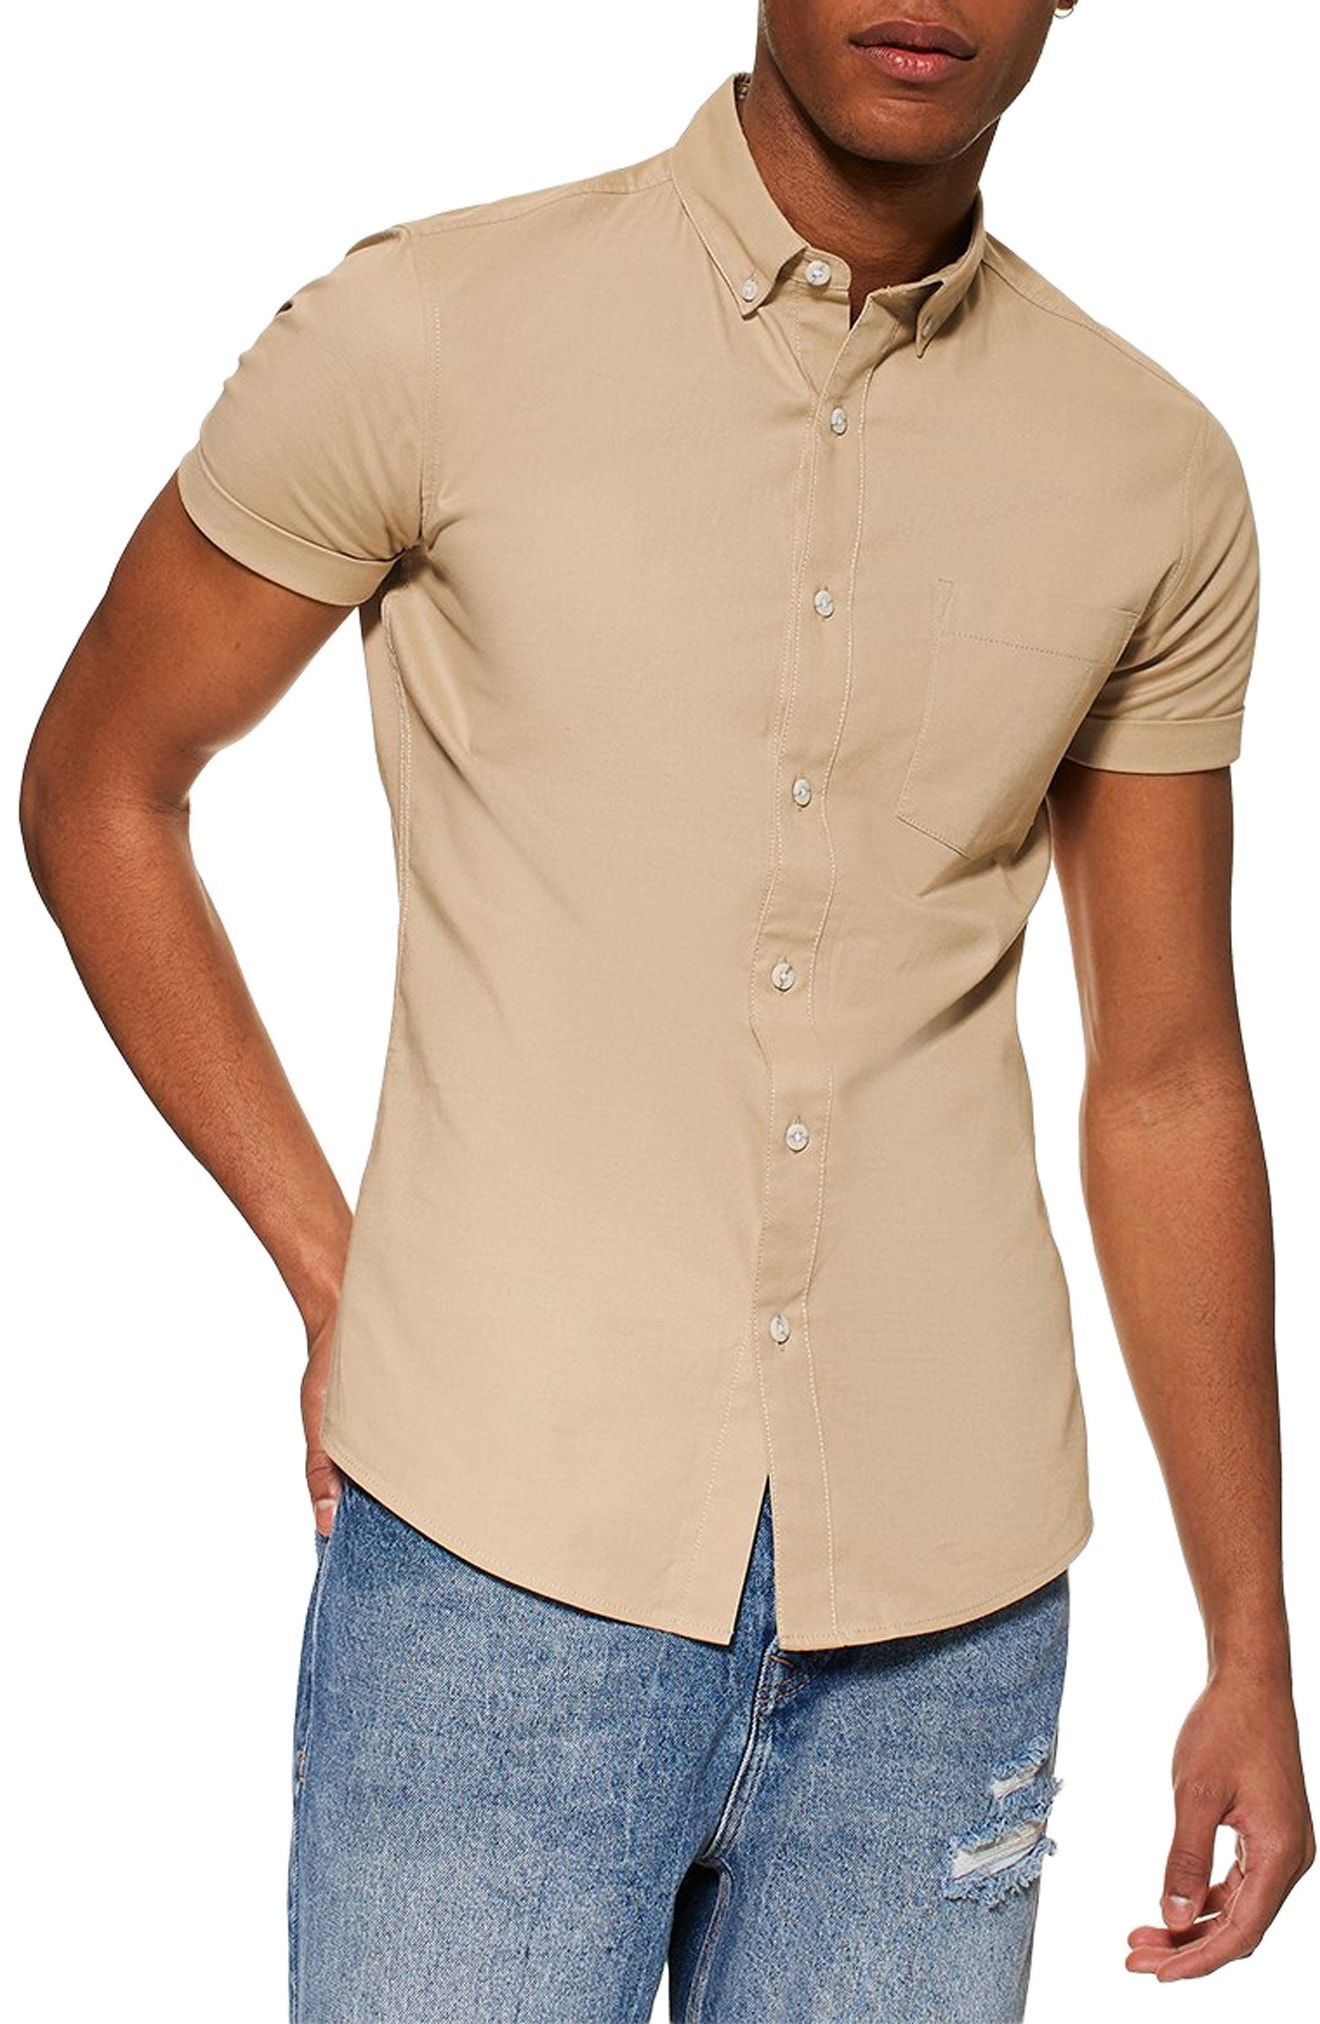 92beec25f Men's Topman Muscle Fit Oxford Shirt, Size Medium – Beige   The Fashionisto